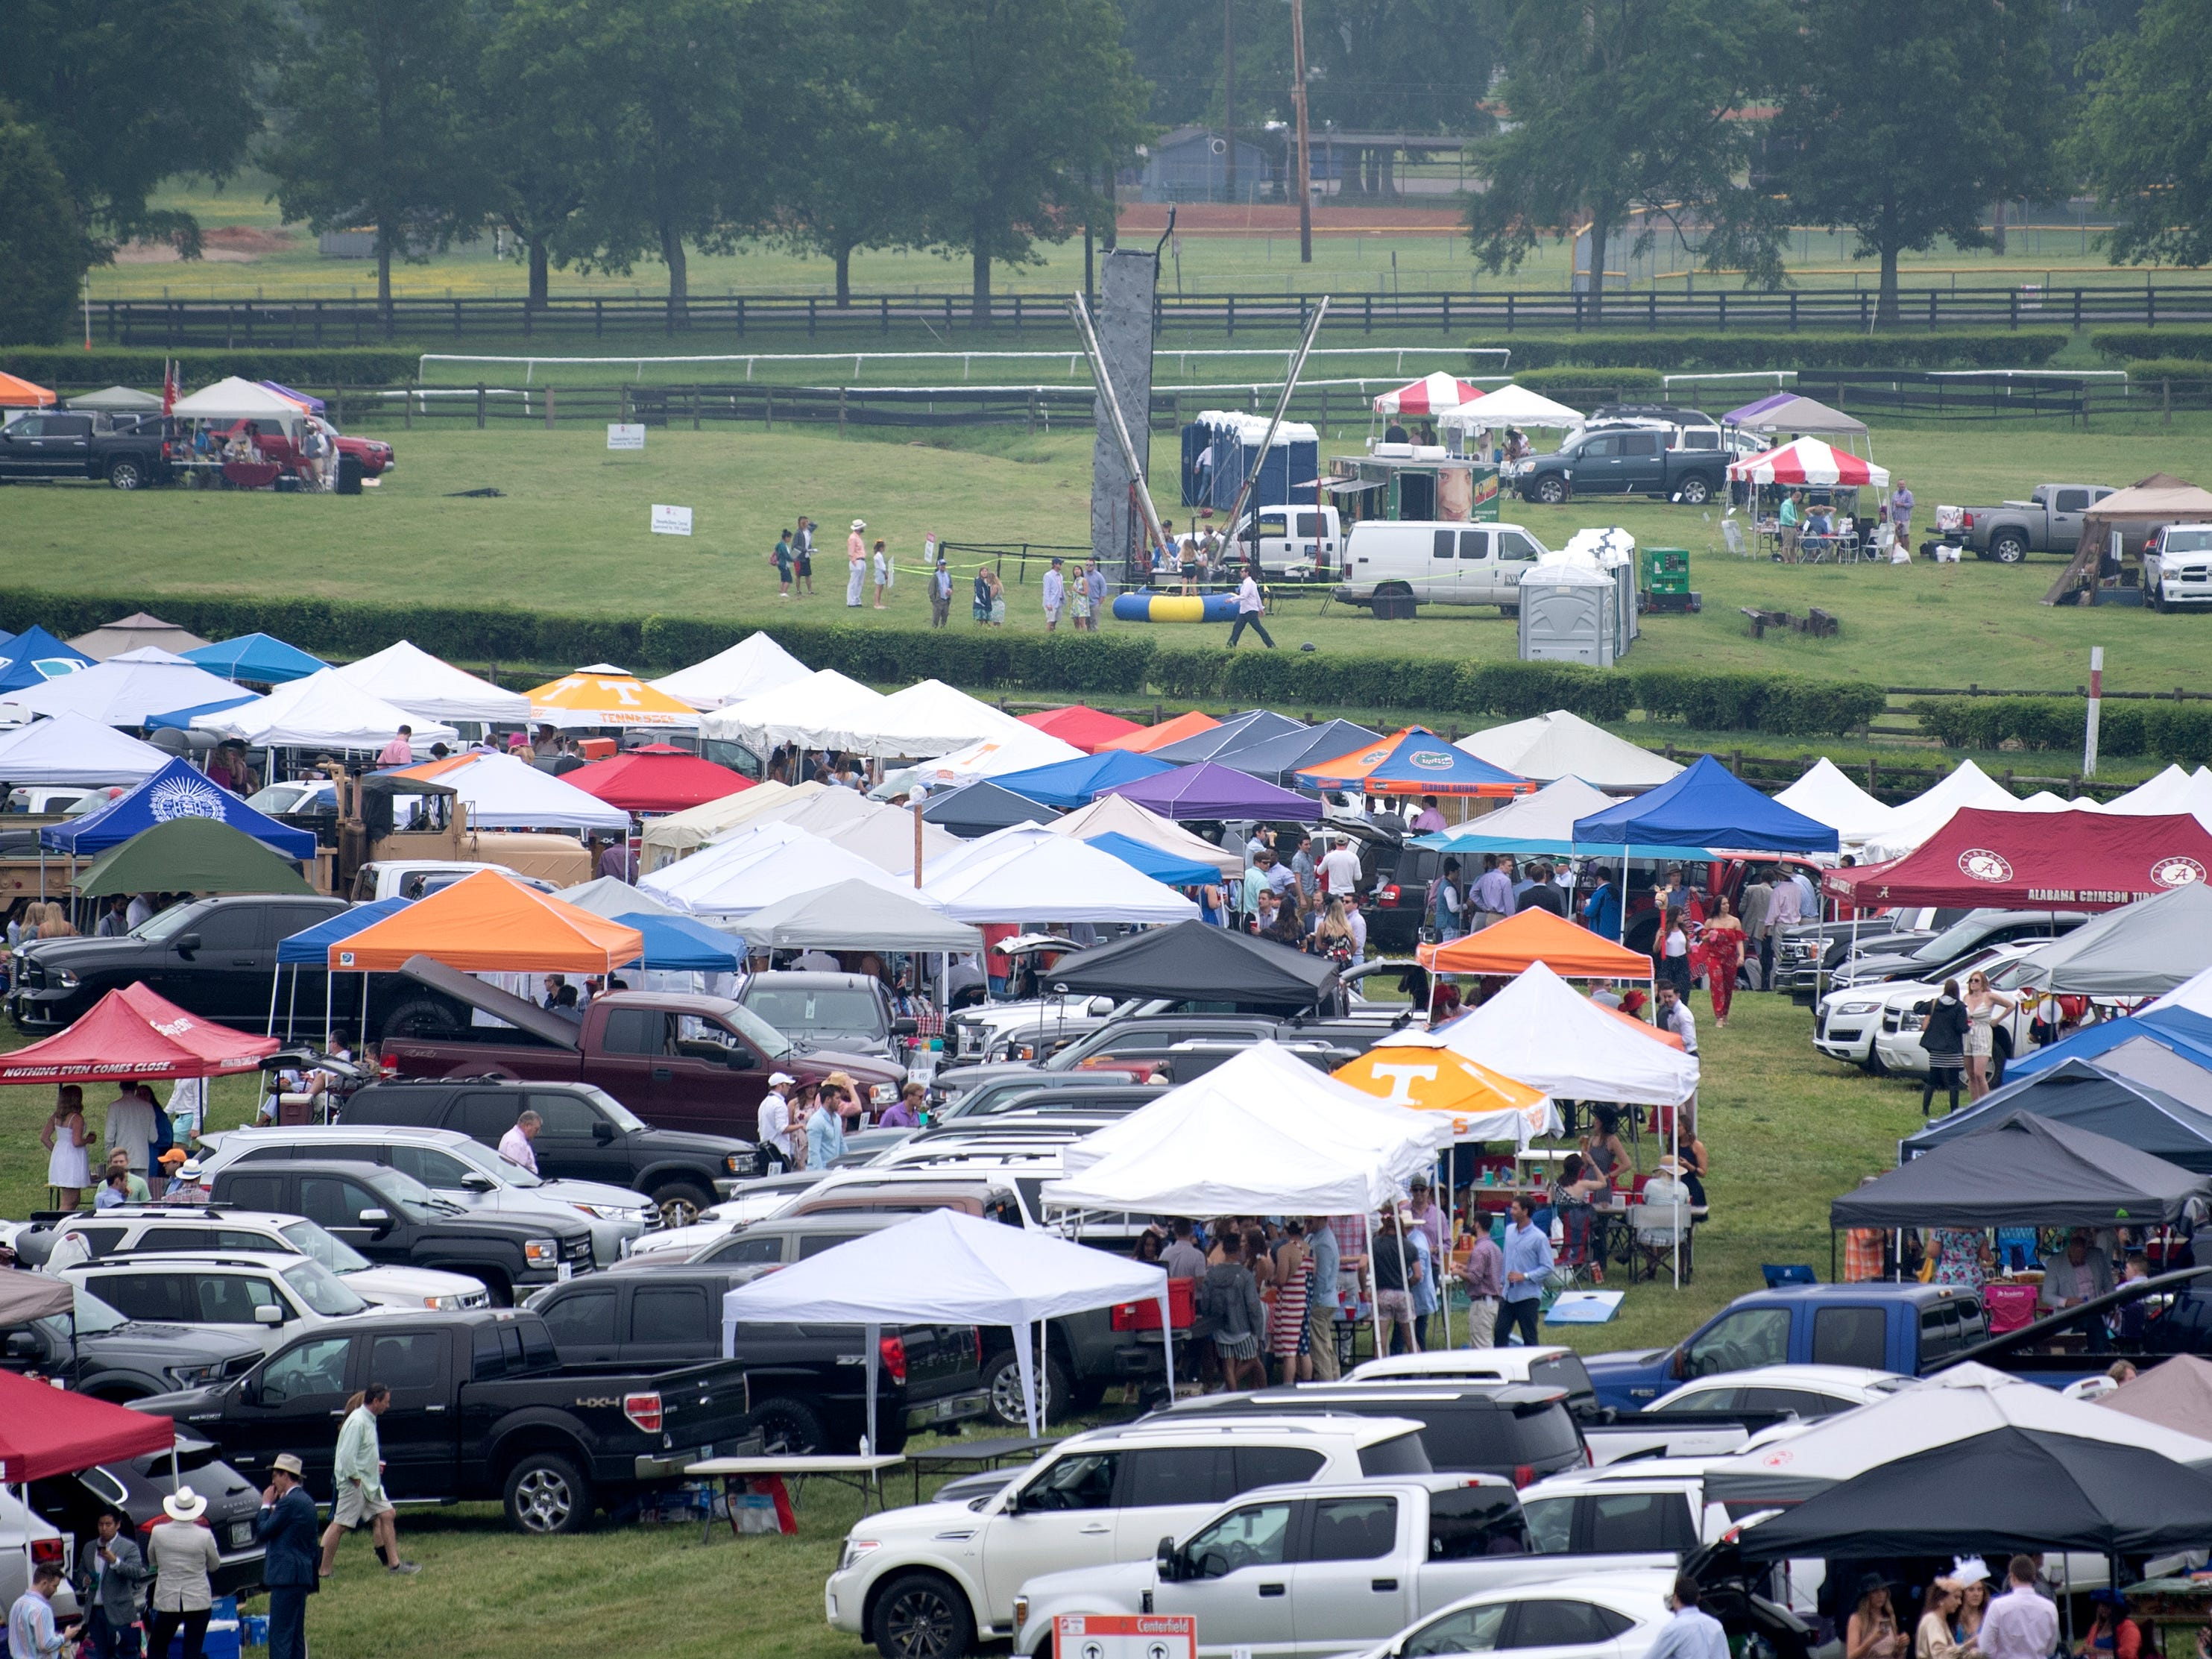 Tailgating at the 78th Iroquois Steeplechase at Percy Warner park in Nashville on Saturday, May, 11, 2019.